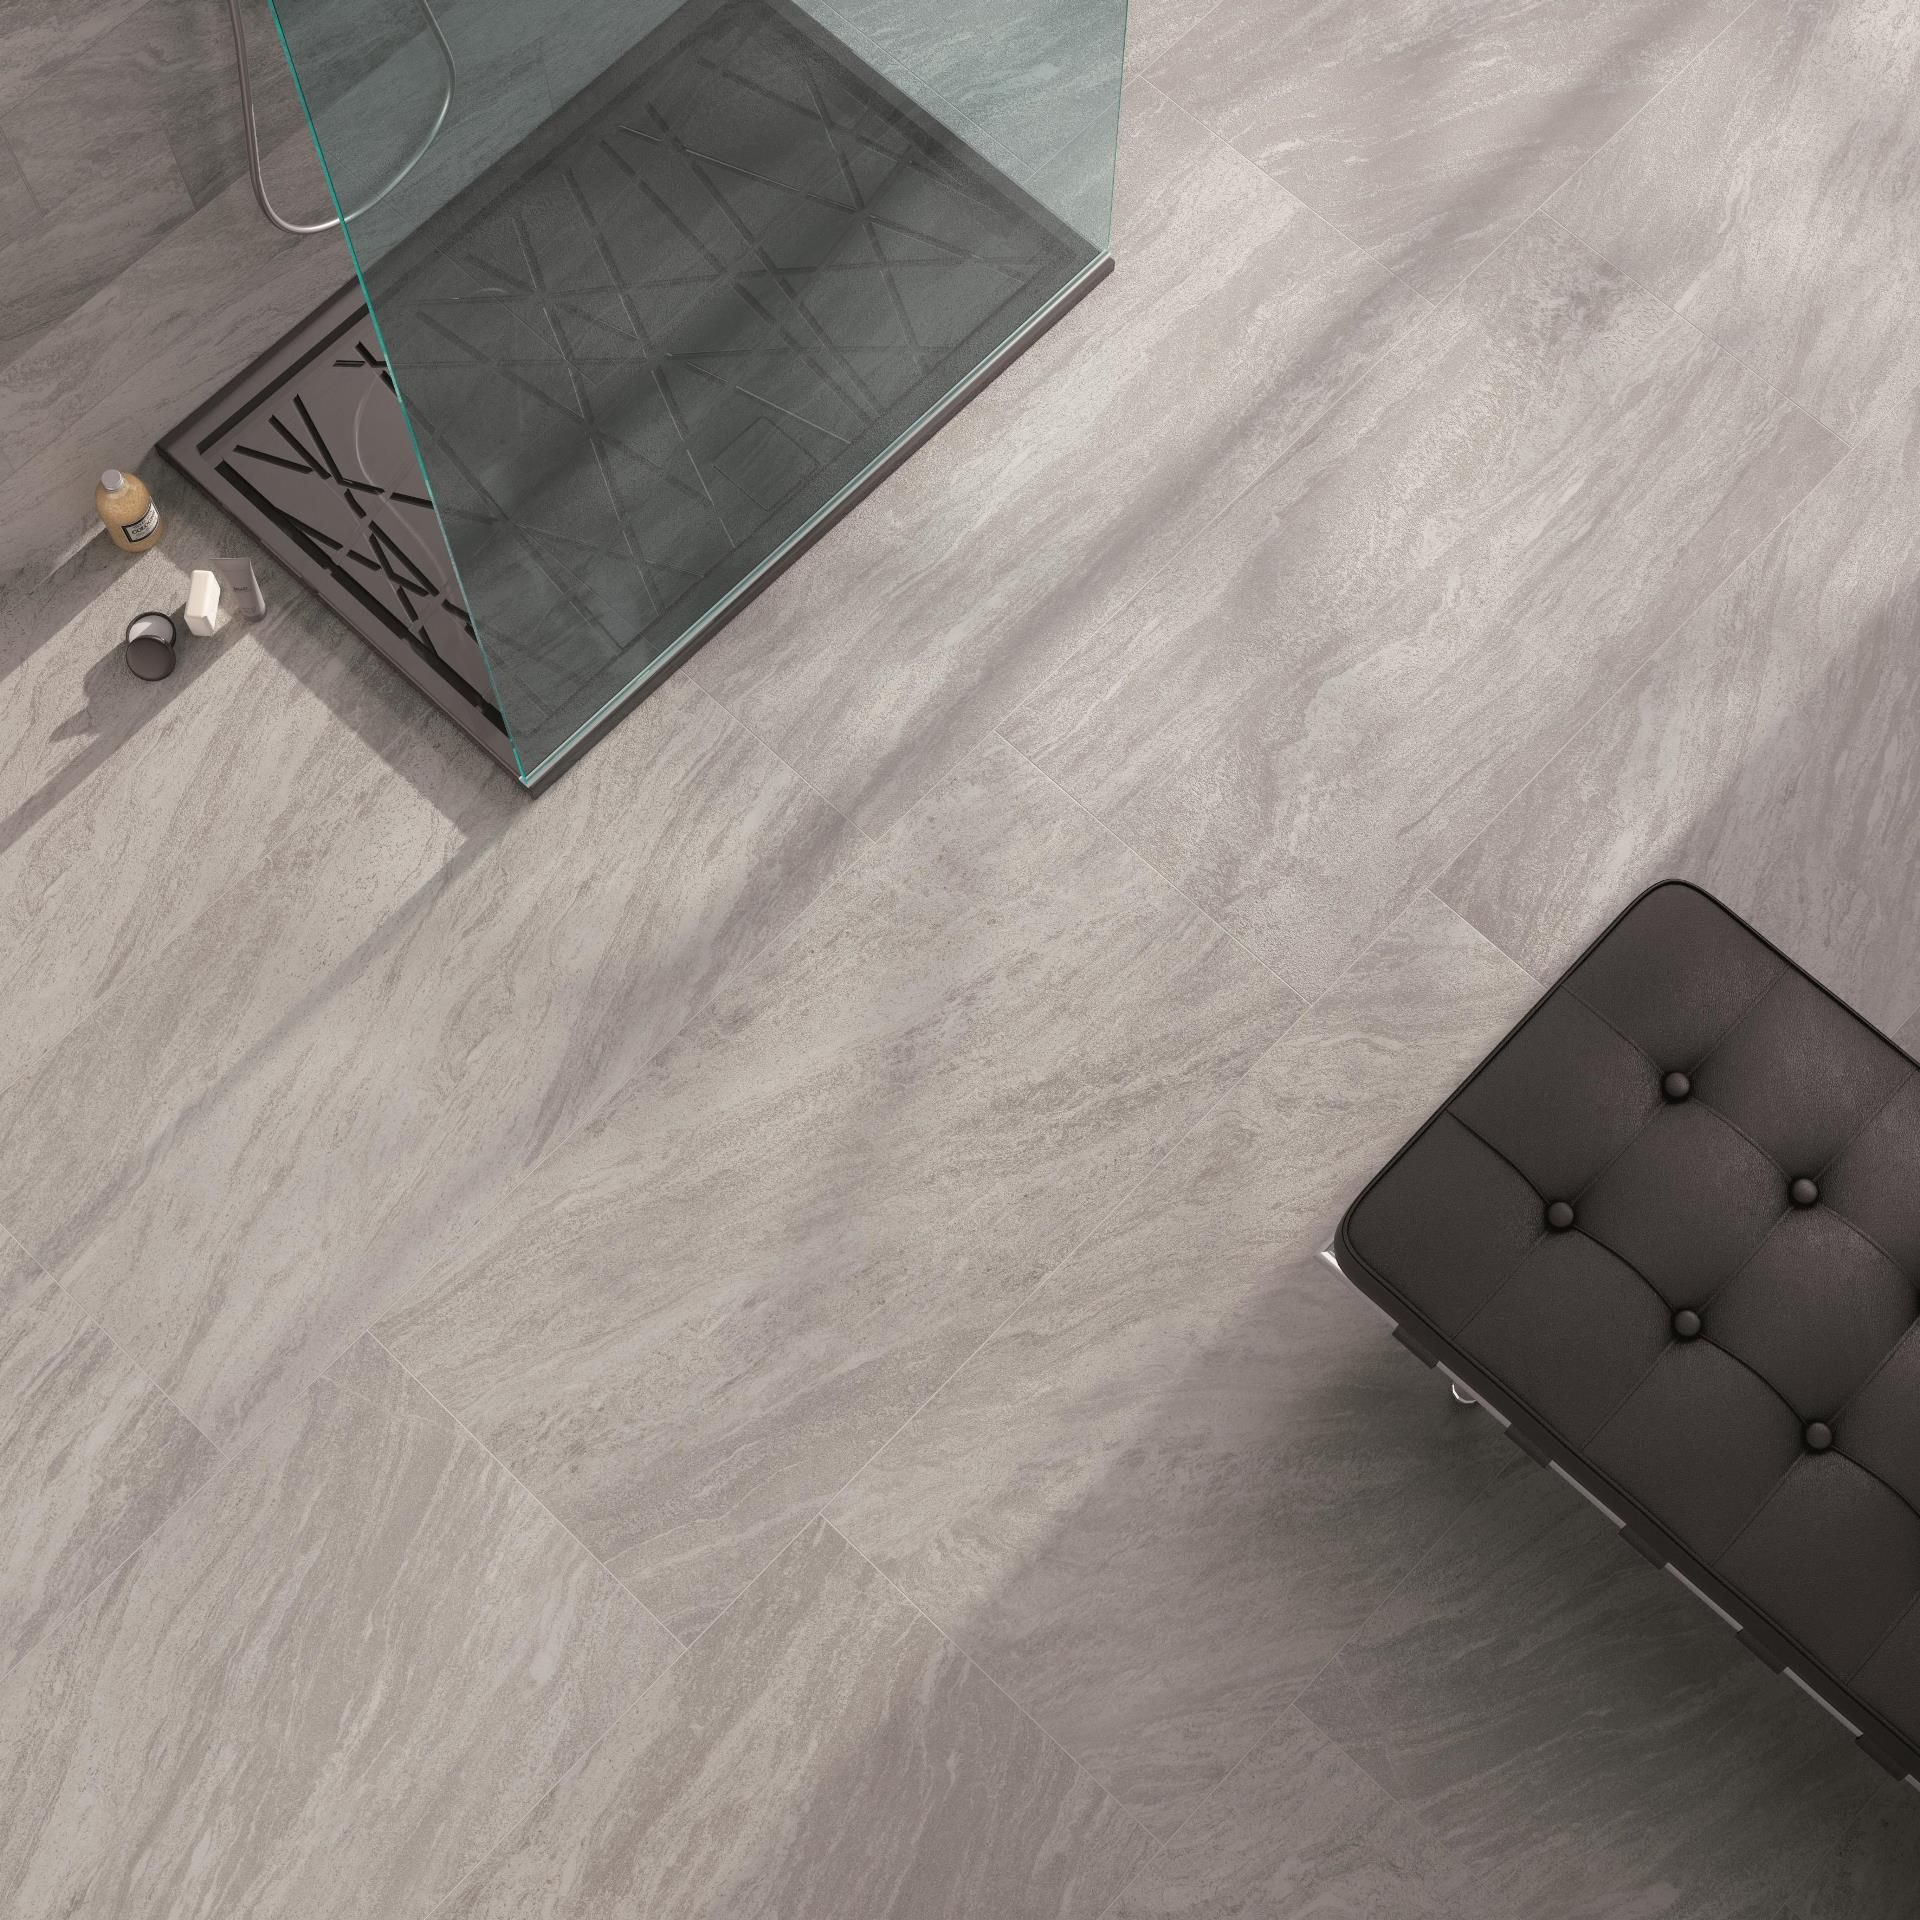 Valstein cisa ceramiche effetto pietra gres porcellanato for stone effect tiles for wall and floor porcelain stoneware valstein dailygadgetfo Choice Image